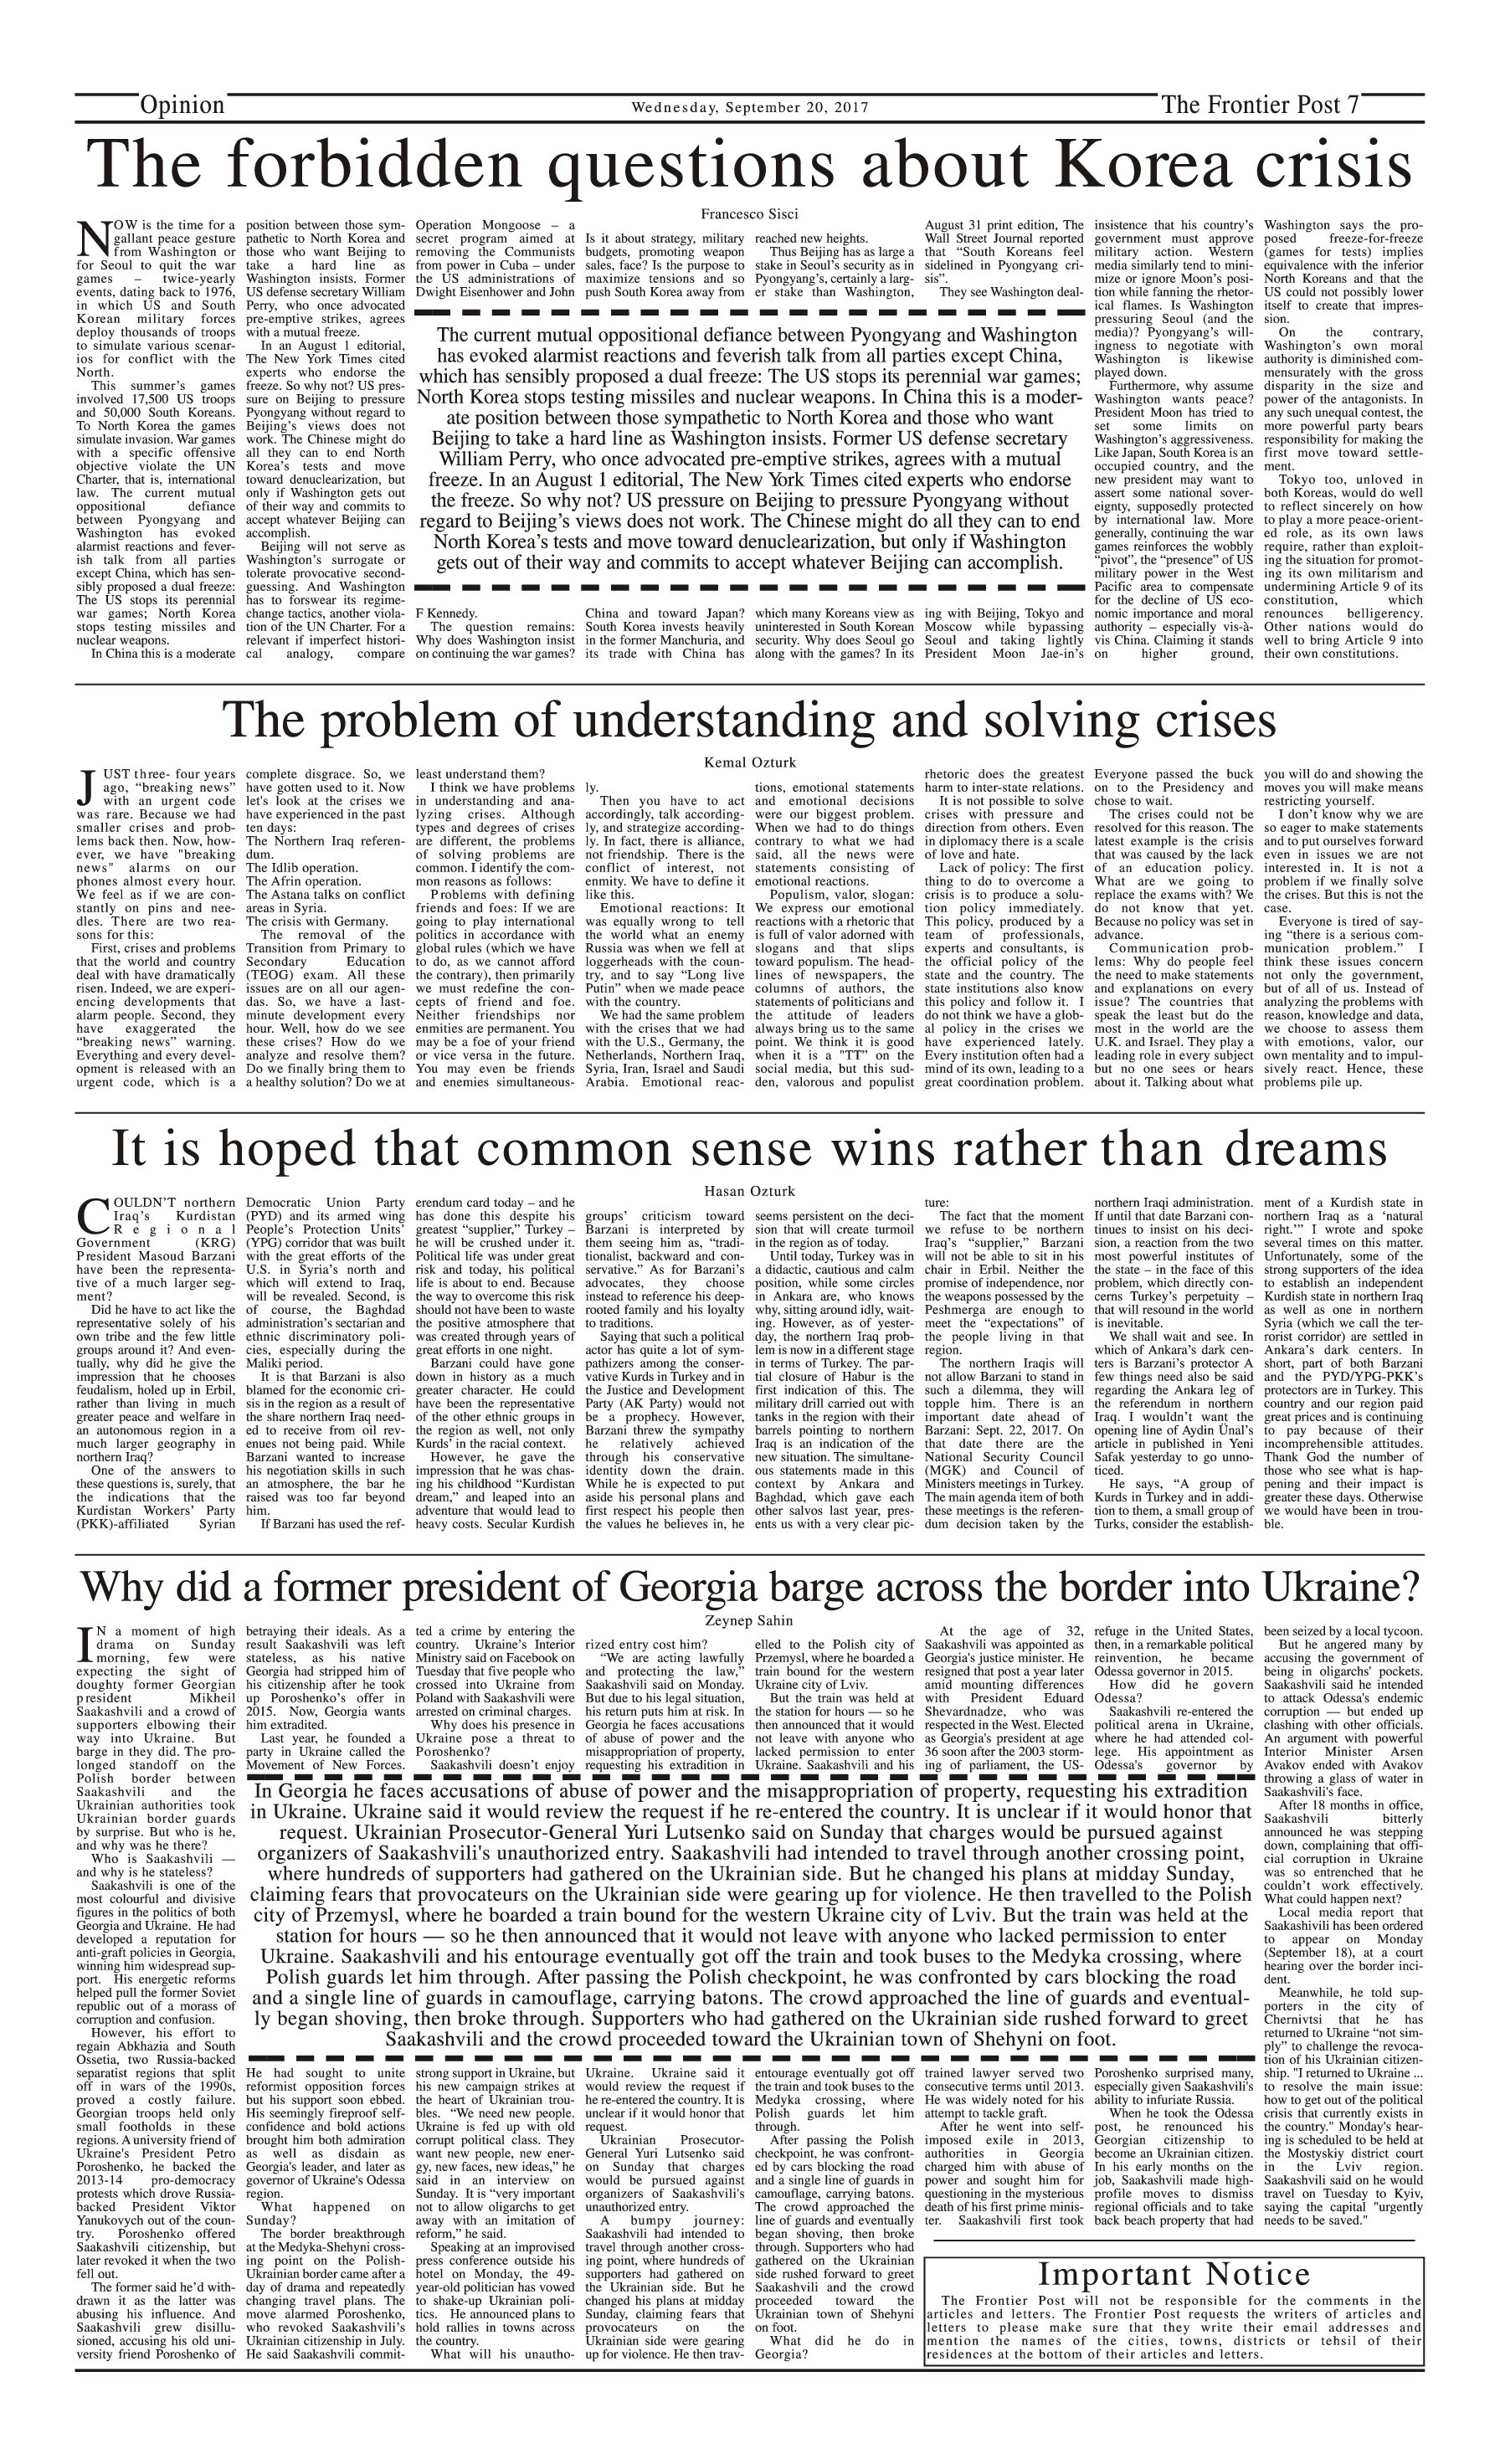 Opinion Page 20-09